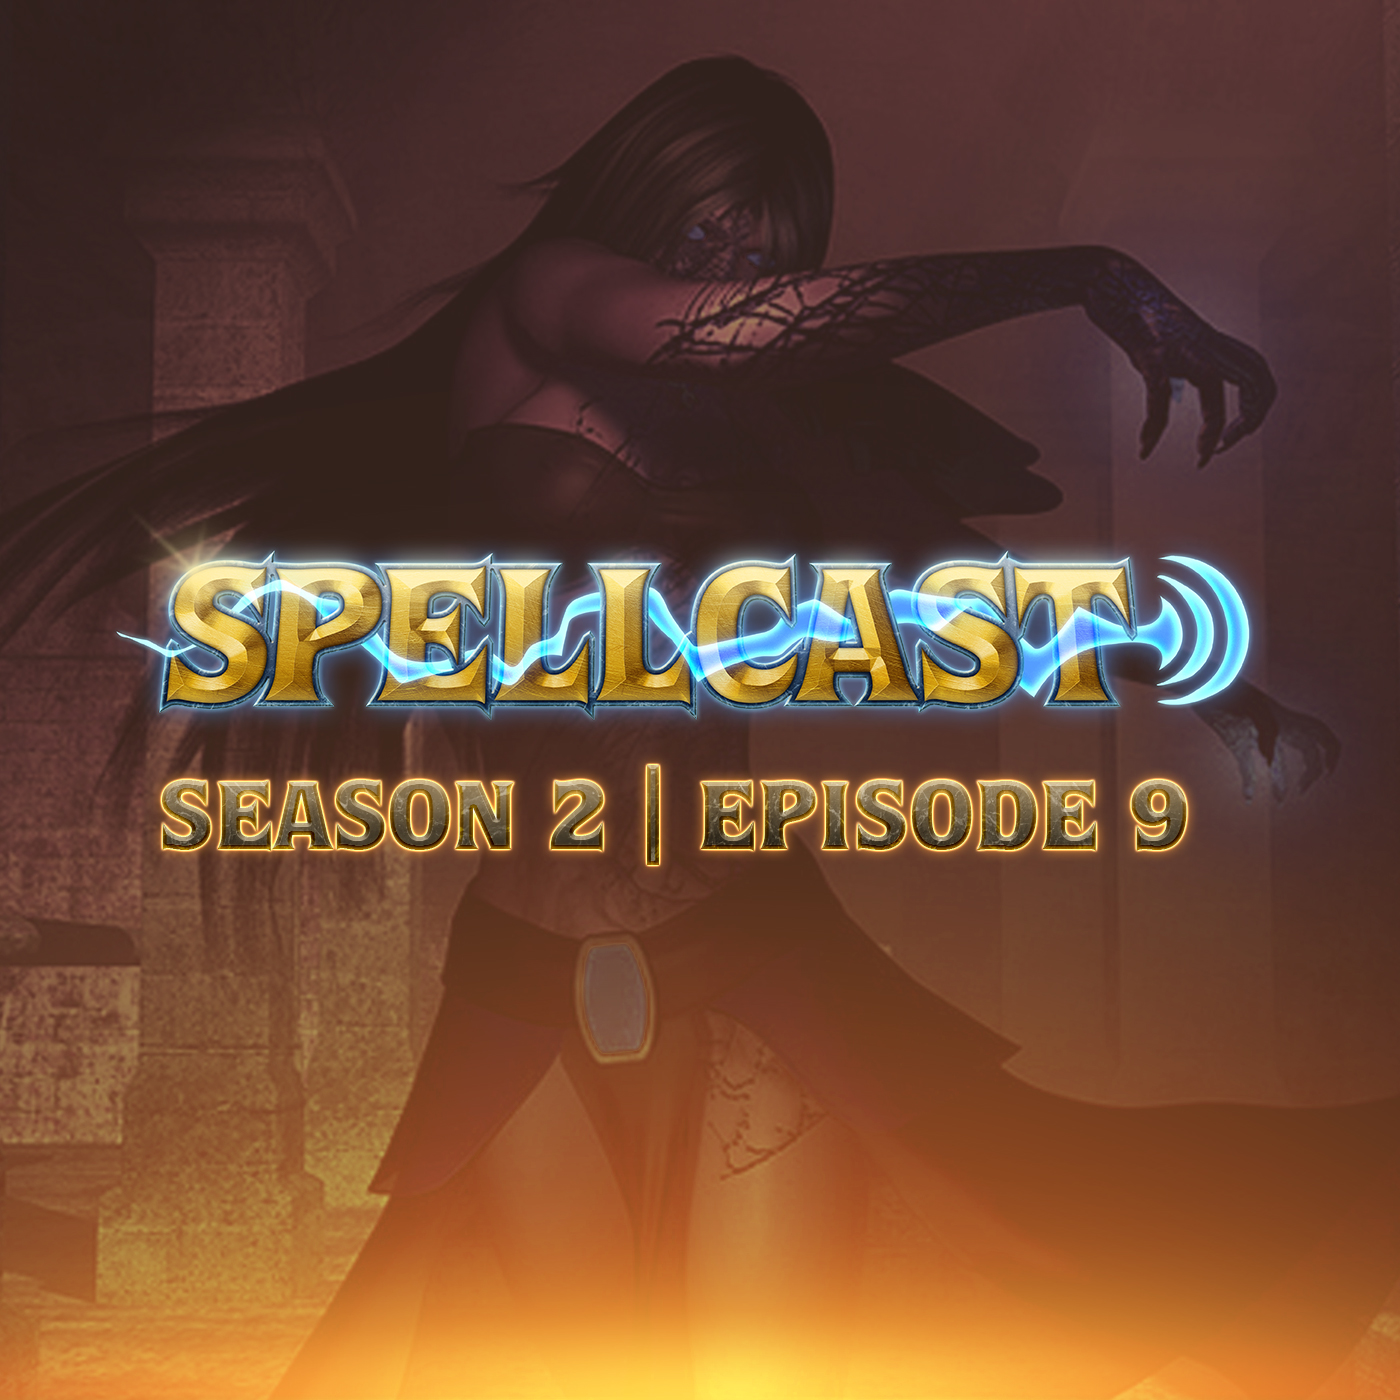 Spellcast Season 2 Episode 9